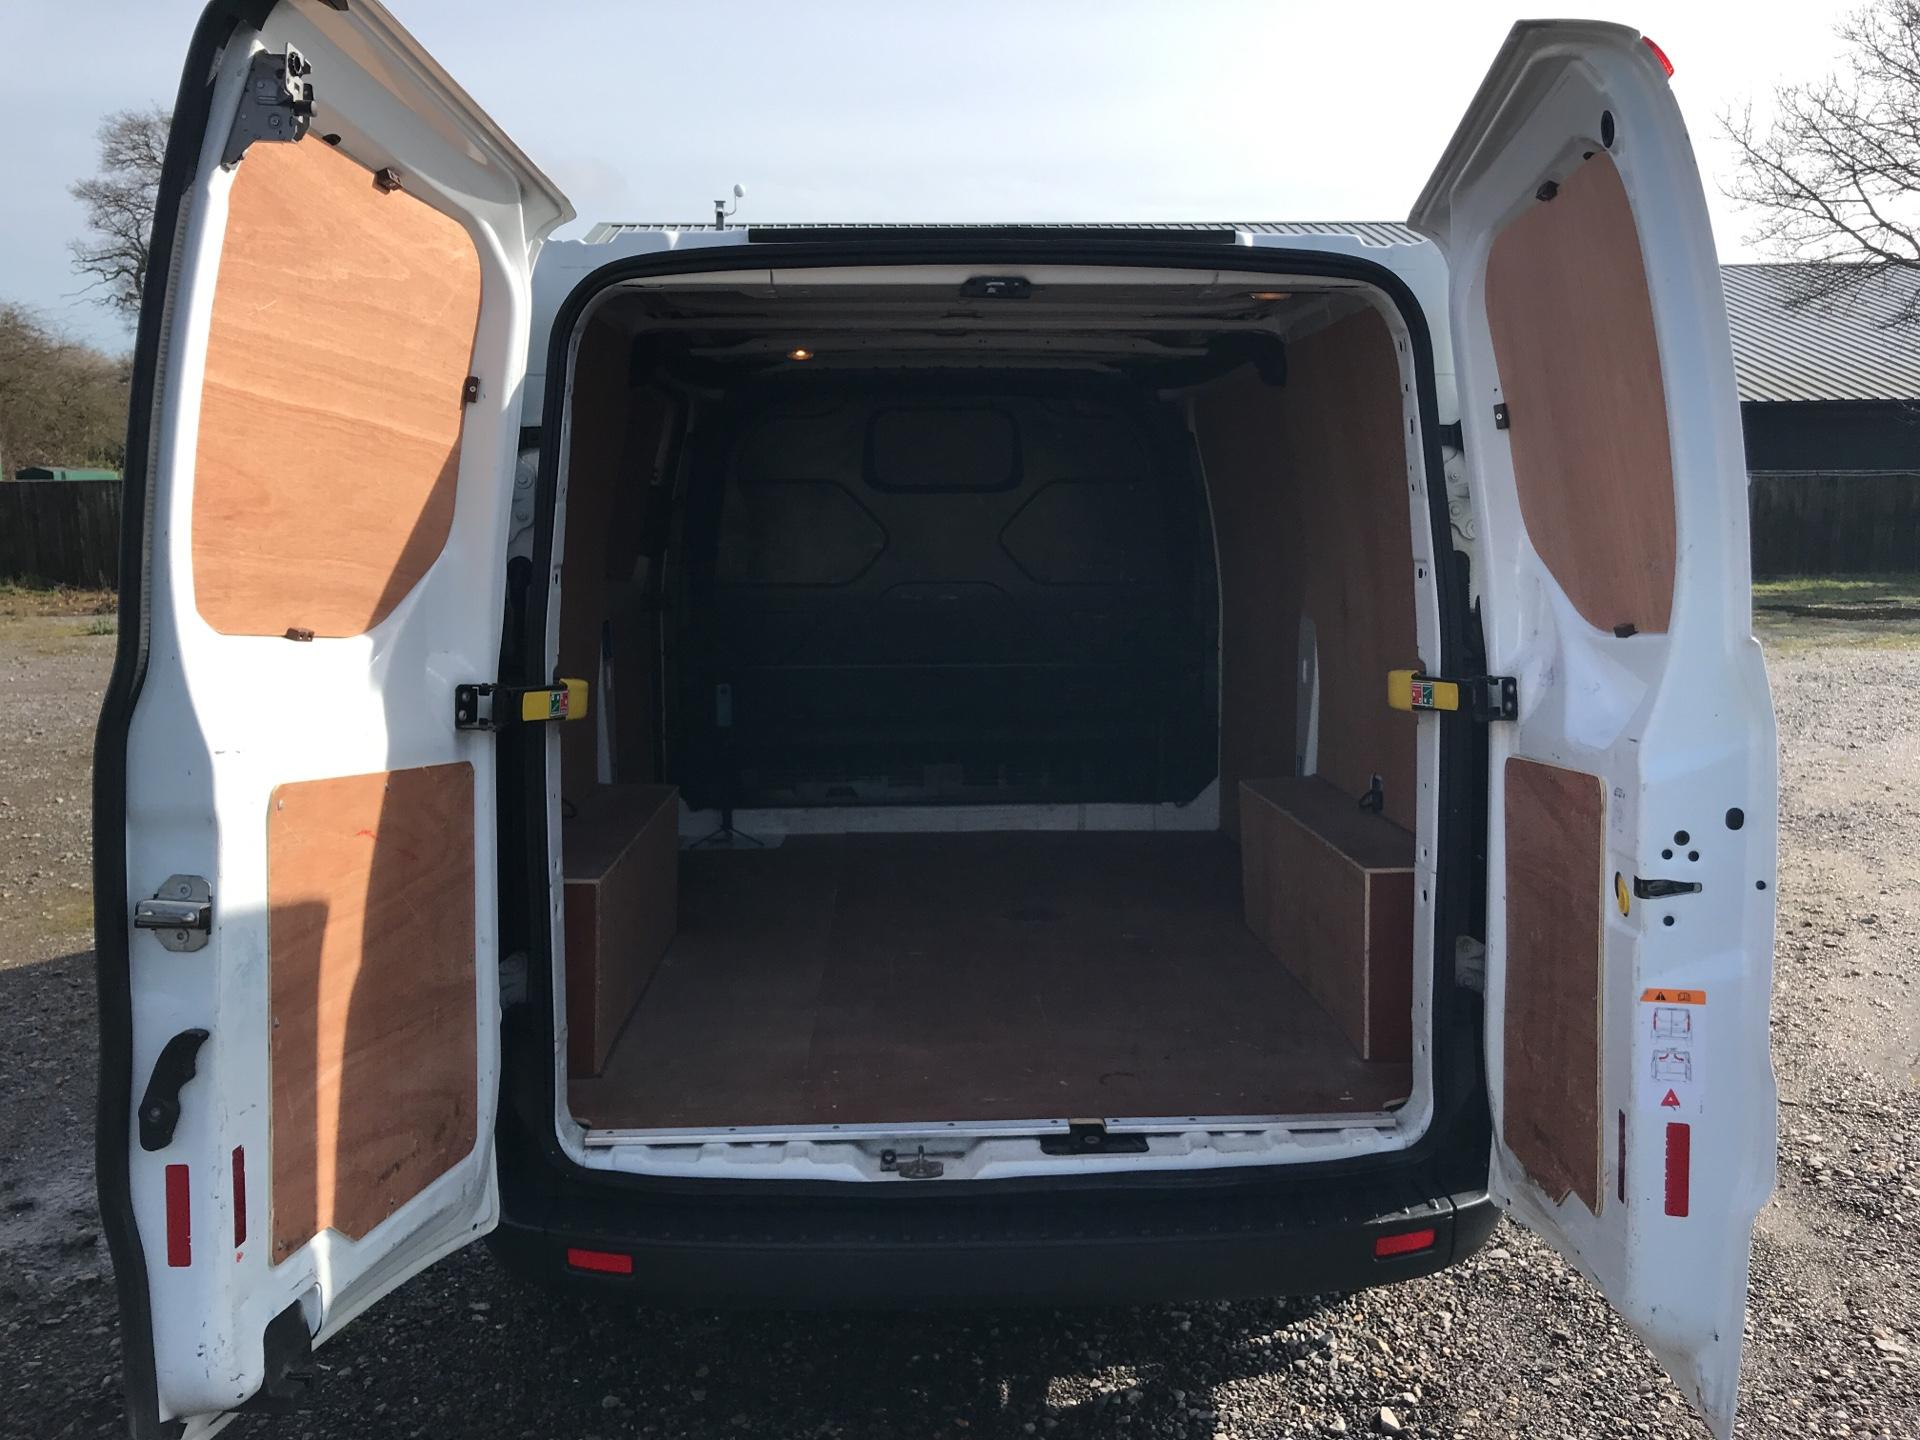 2015 Ford Transit Custom 290 L1 DIESEL FWD 2.2 TDCI 100PS LOW ROOF VAN EURO 5 (WO15NXV) Thumbnail 16